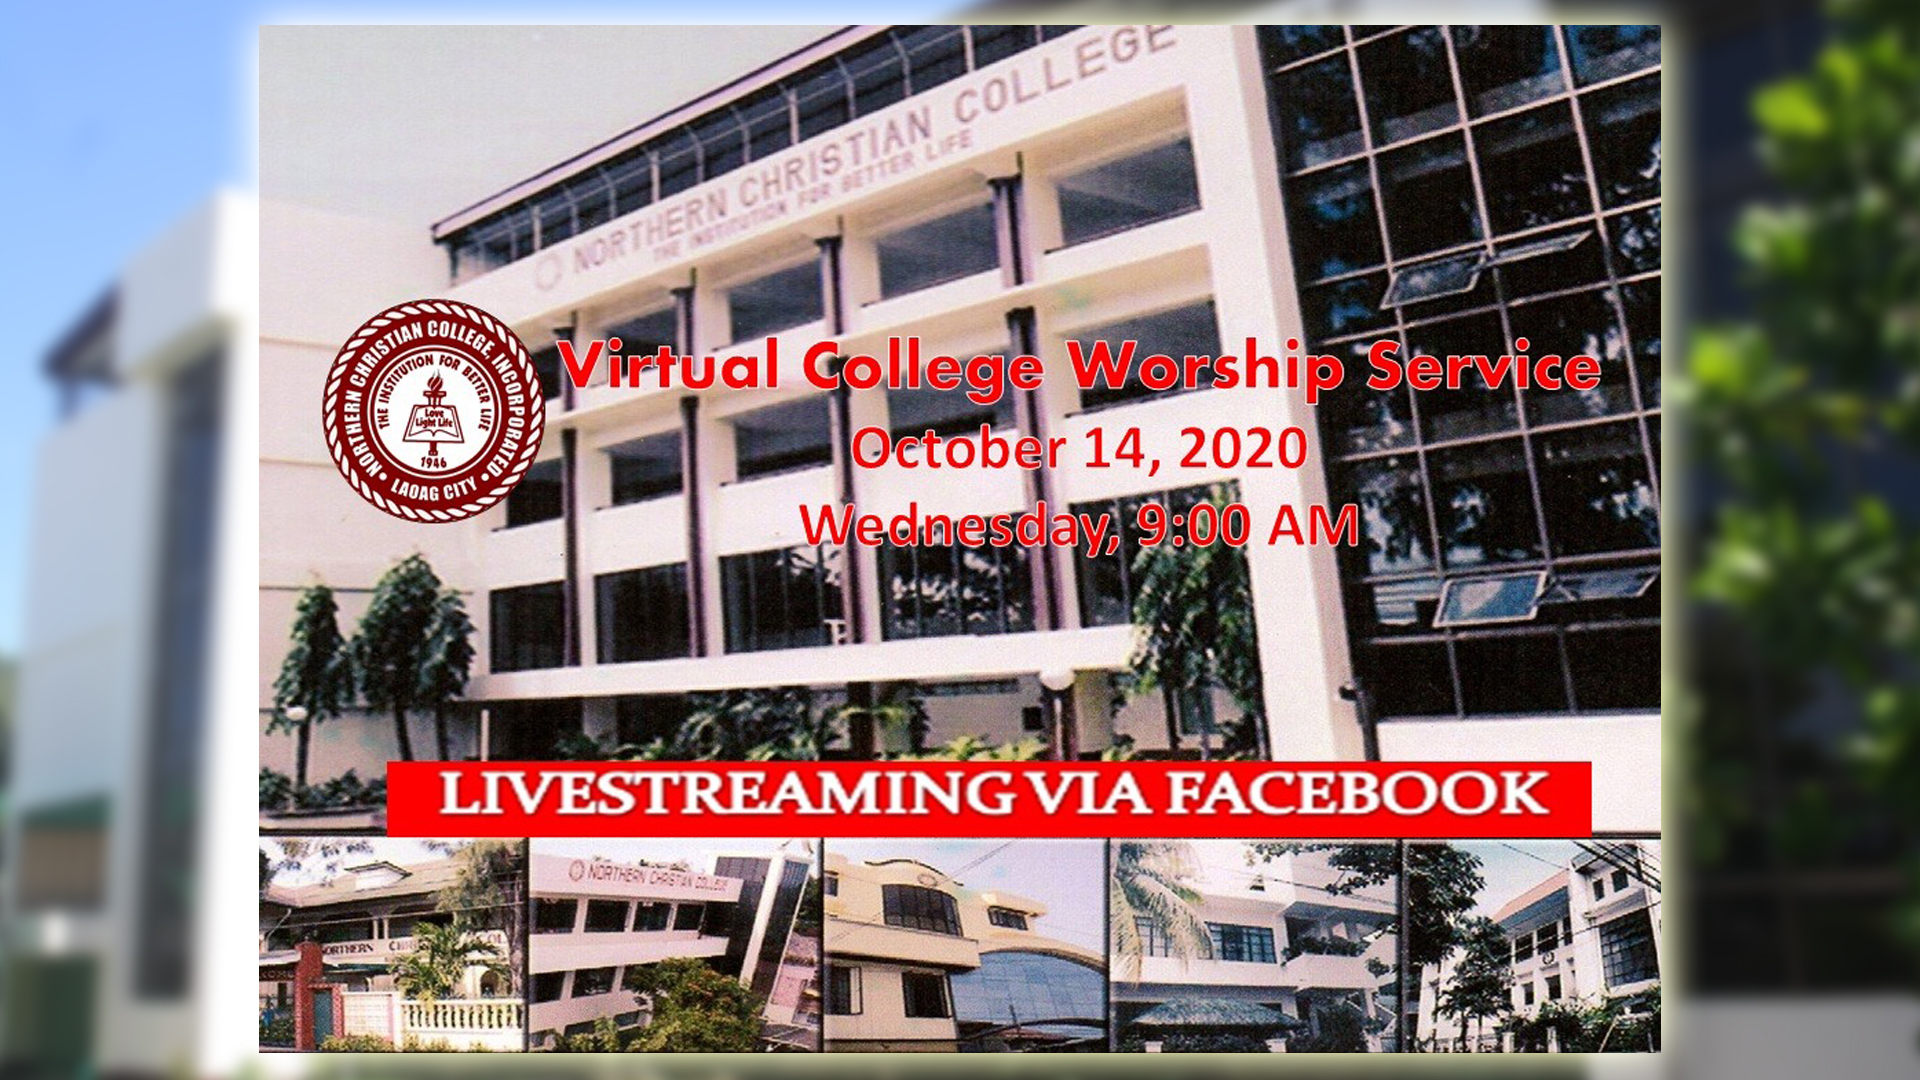 Virtual College Worship Service - October 14, 2020